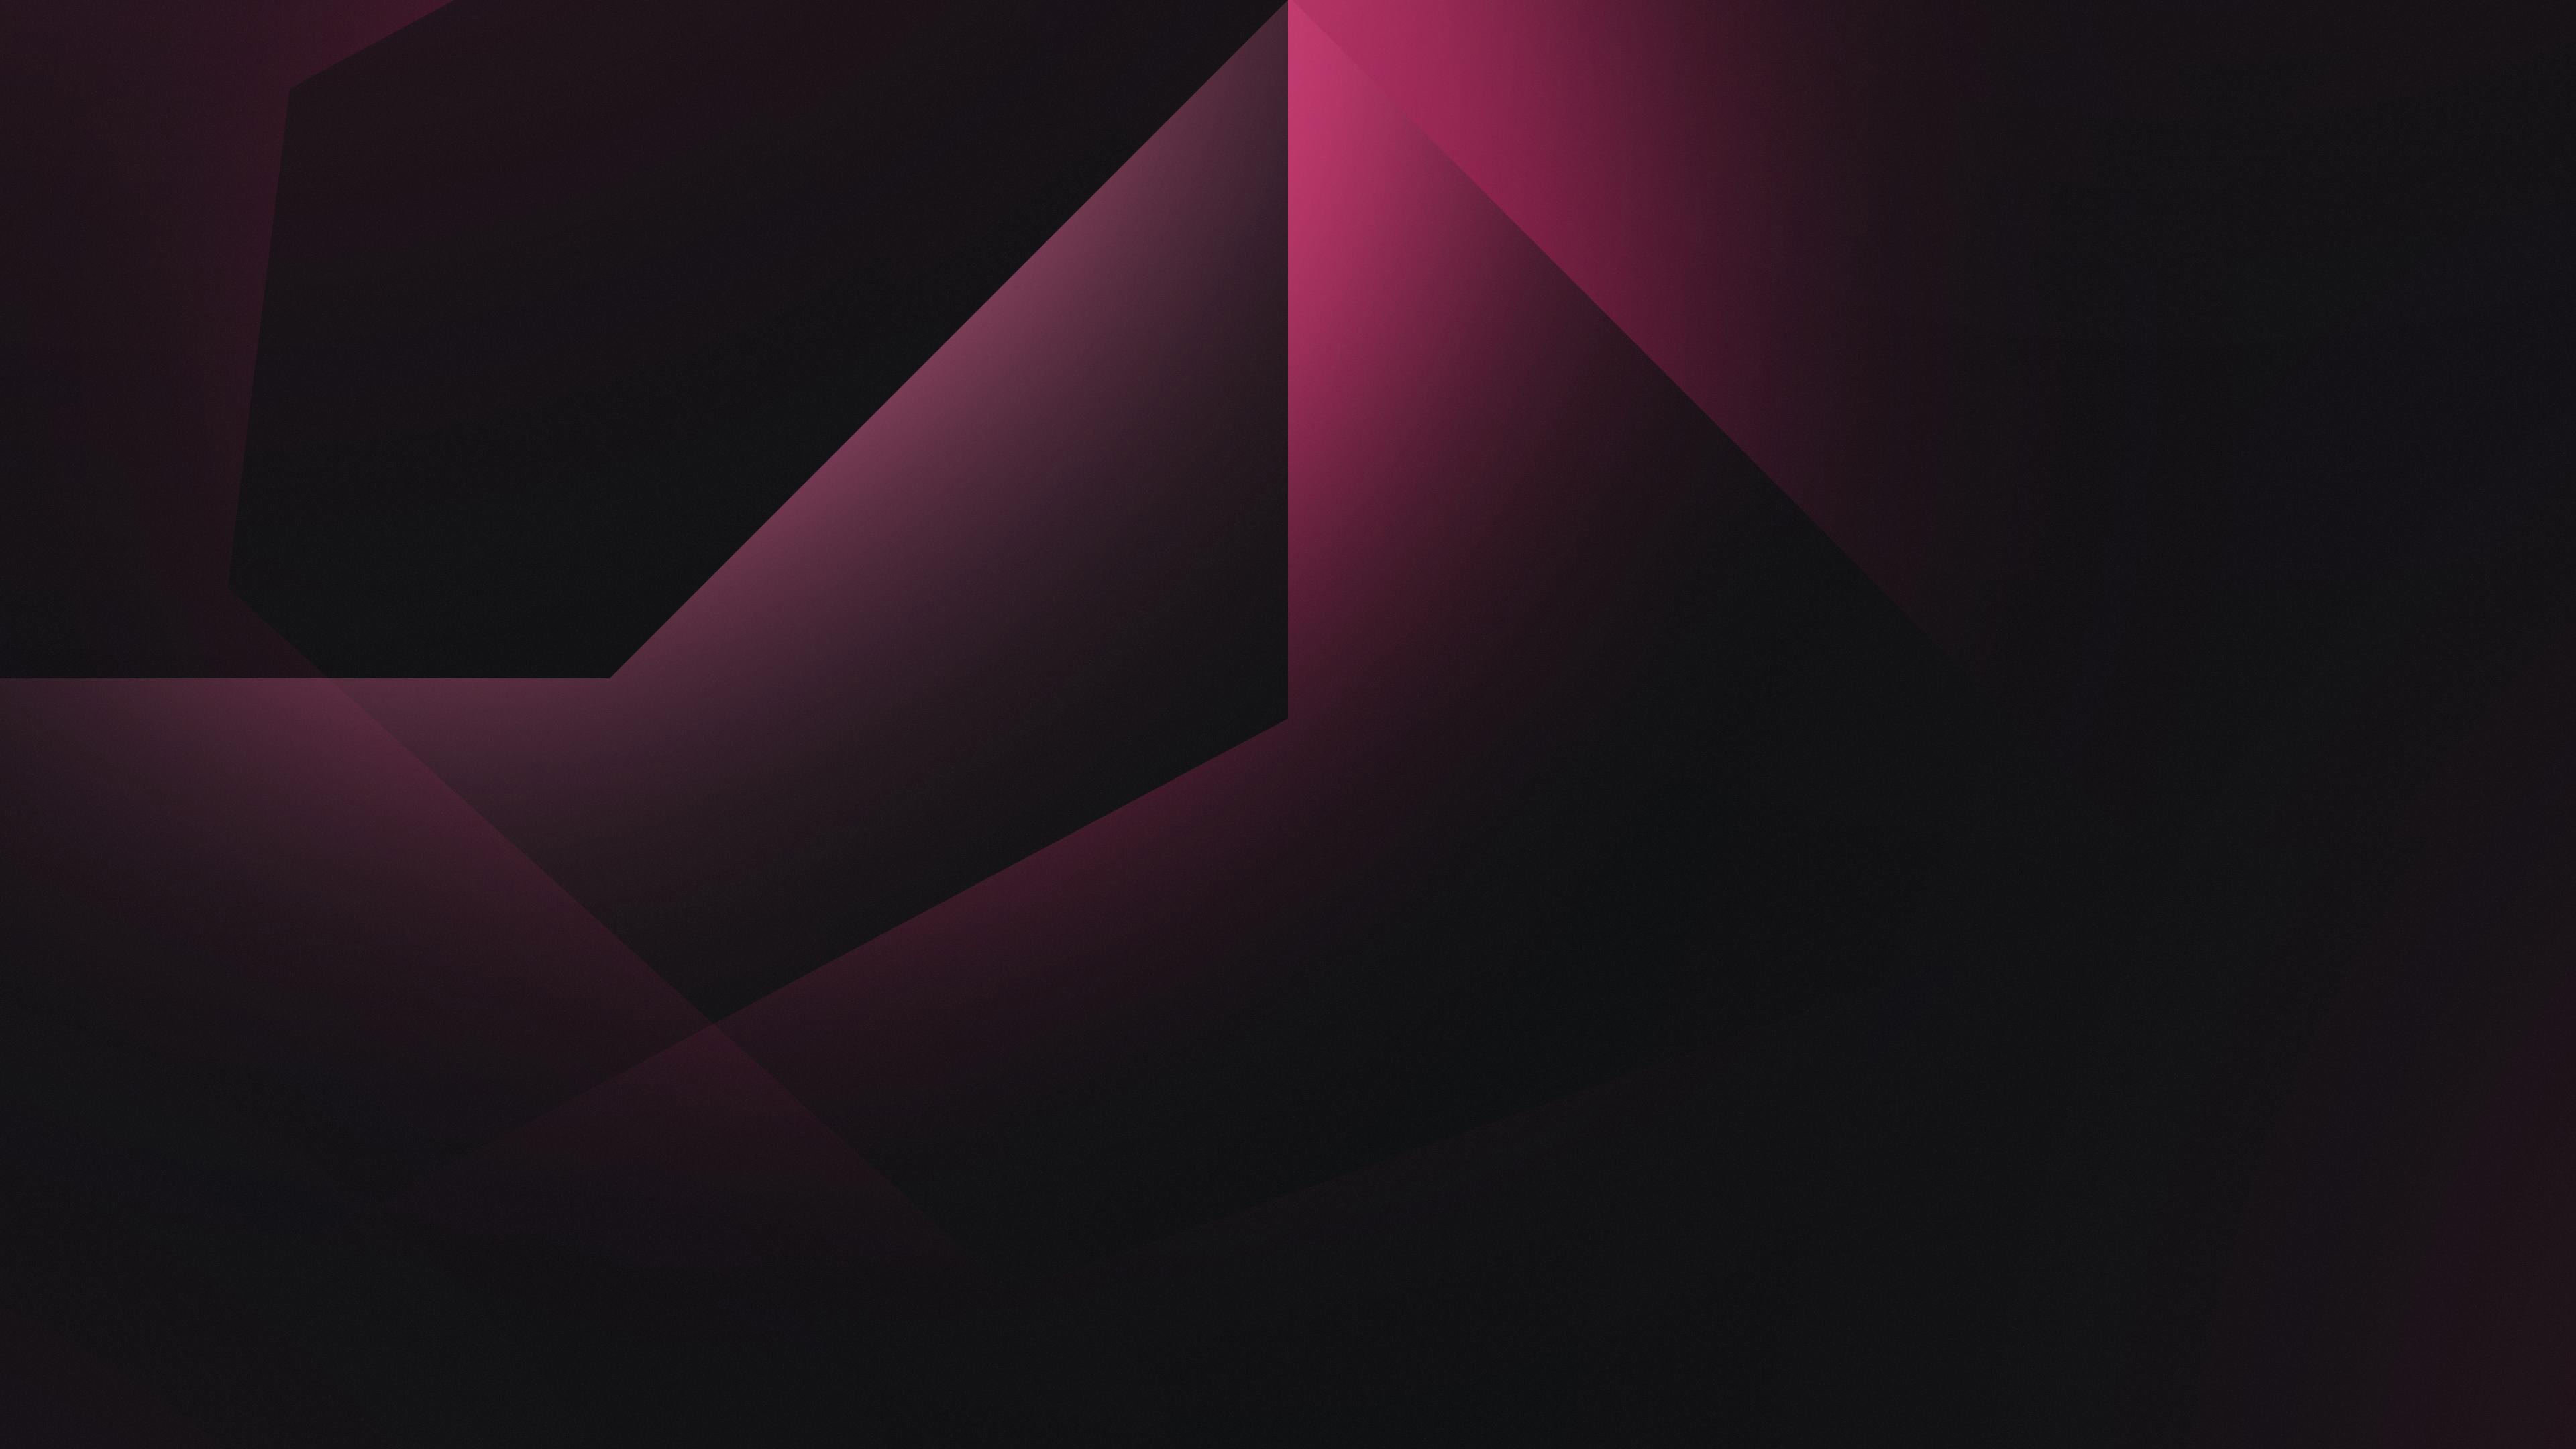 abstract dark red 4k 1539371367 - Abstract Dark Red 4k - shapes wallpapers, hd-wallpapers, graphics wallpapers, dark wallpapers, behance wallpapers, abstract wallpapers, 4k-wallpapers